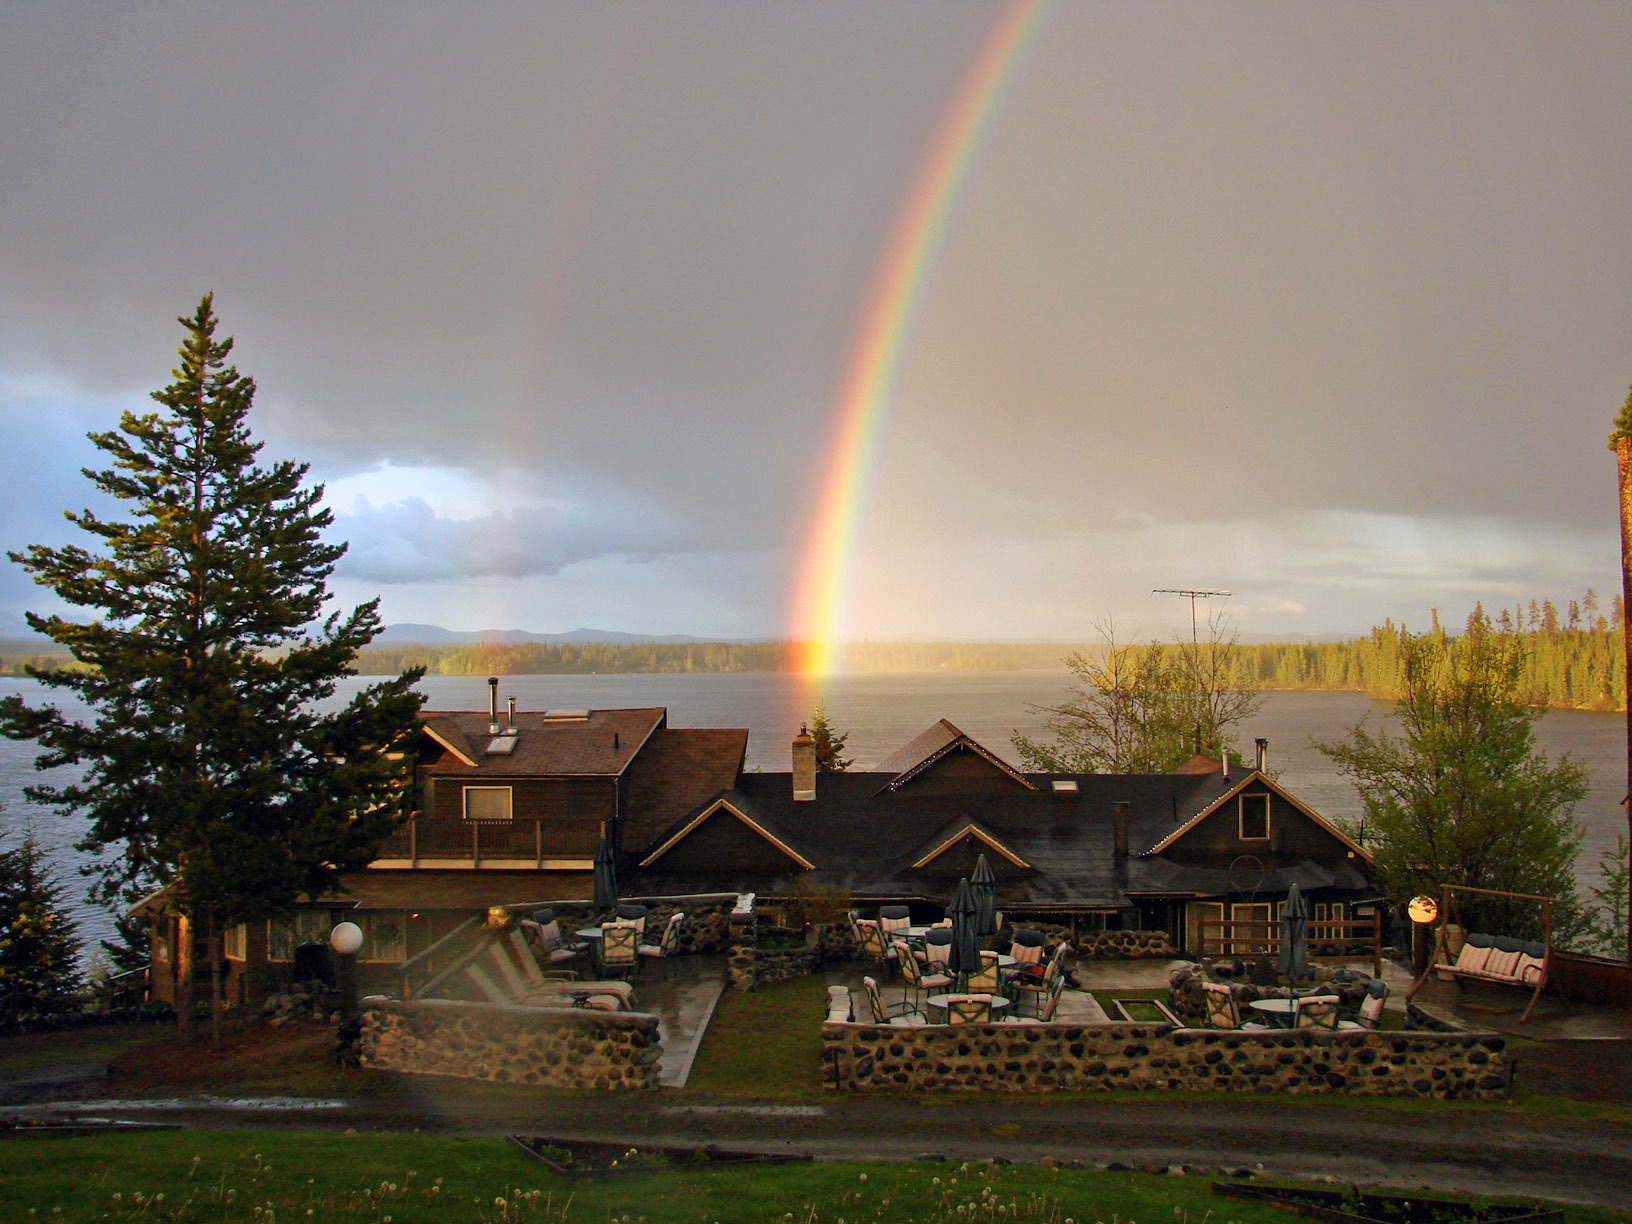 A rainbow over the lodge